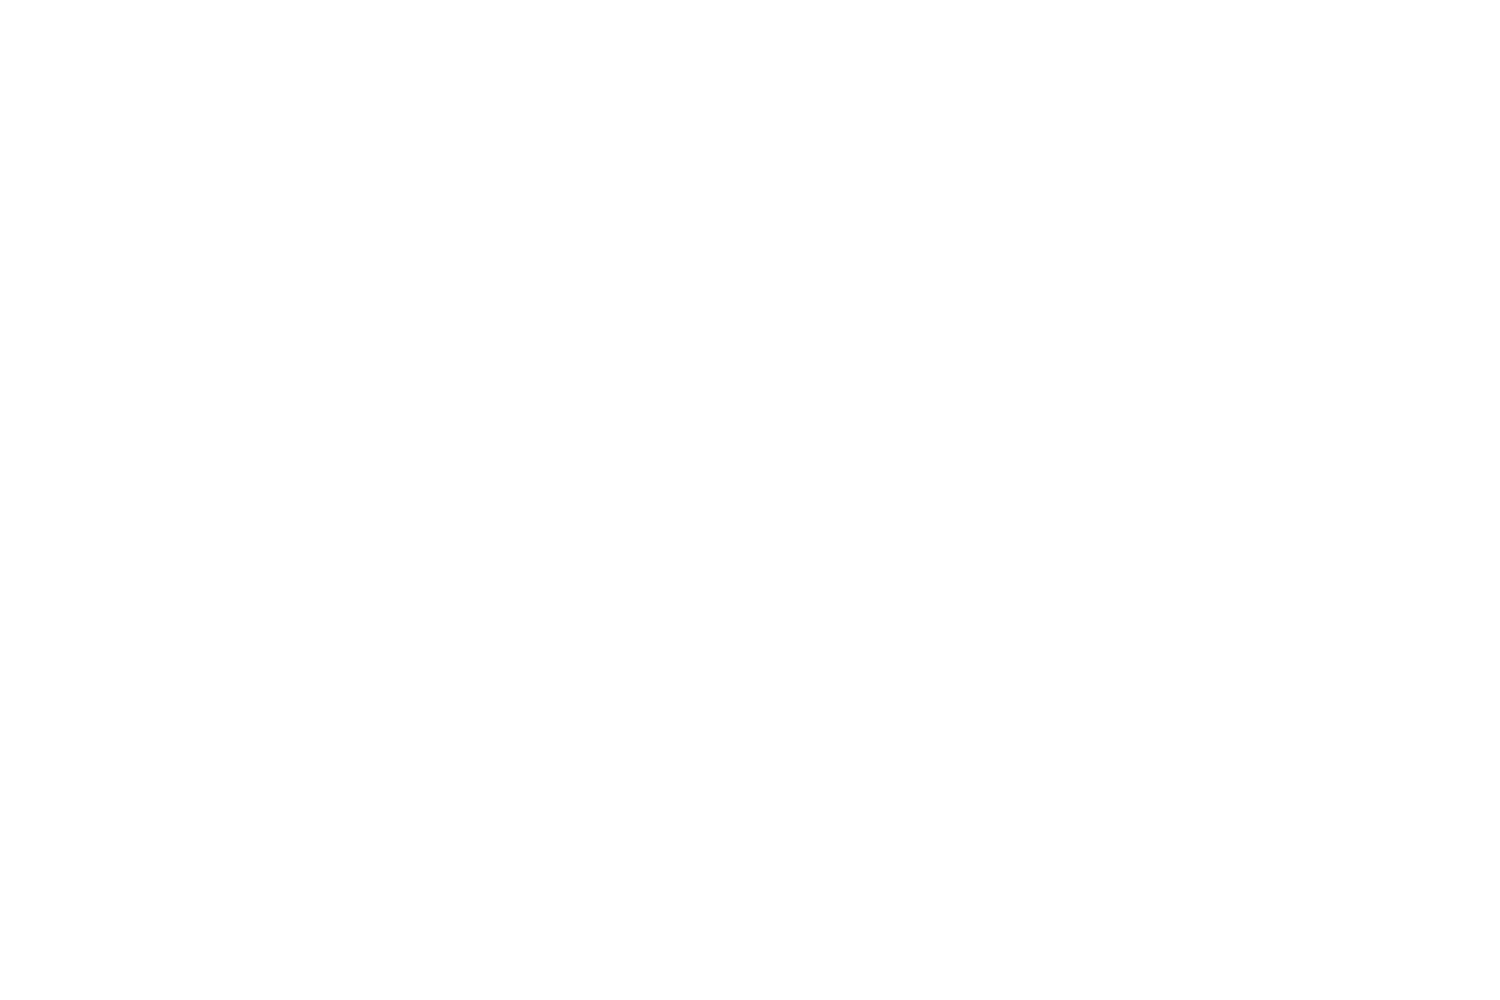 Your Beautiful Life Photography LLC